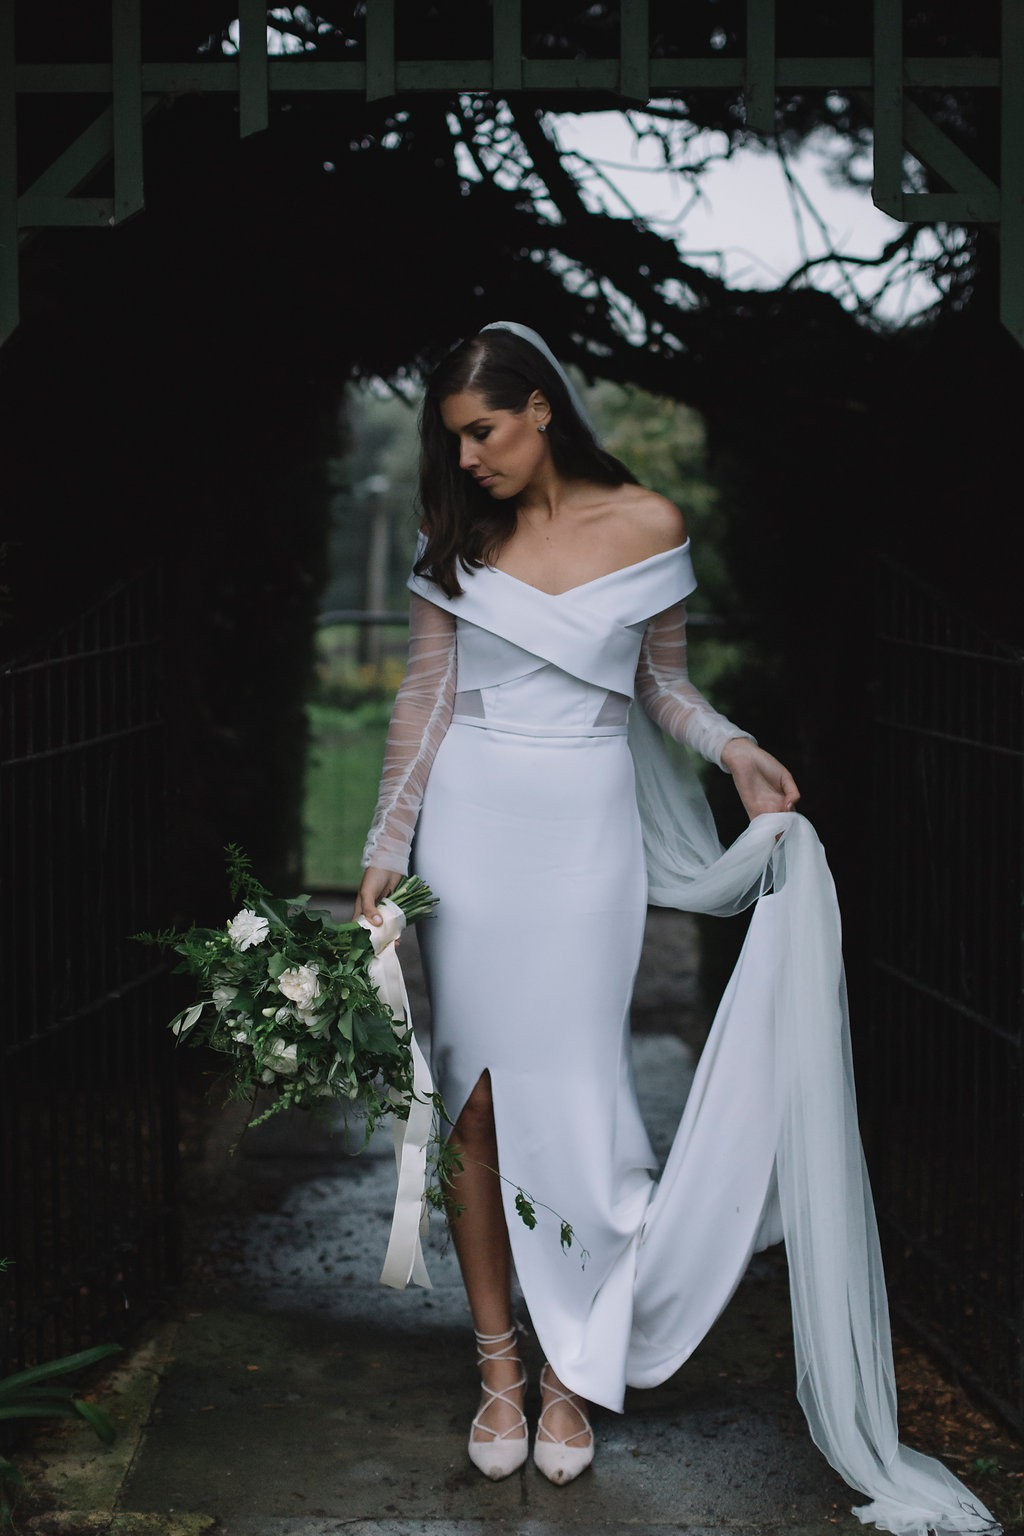 One day bridal violet gown second hand wedding dress on for Second hand wedding dresses san diego